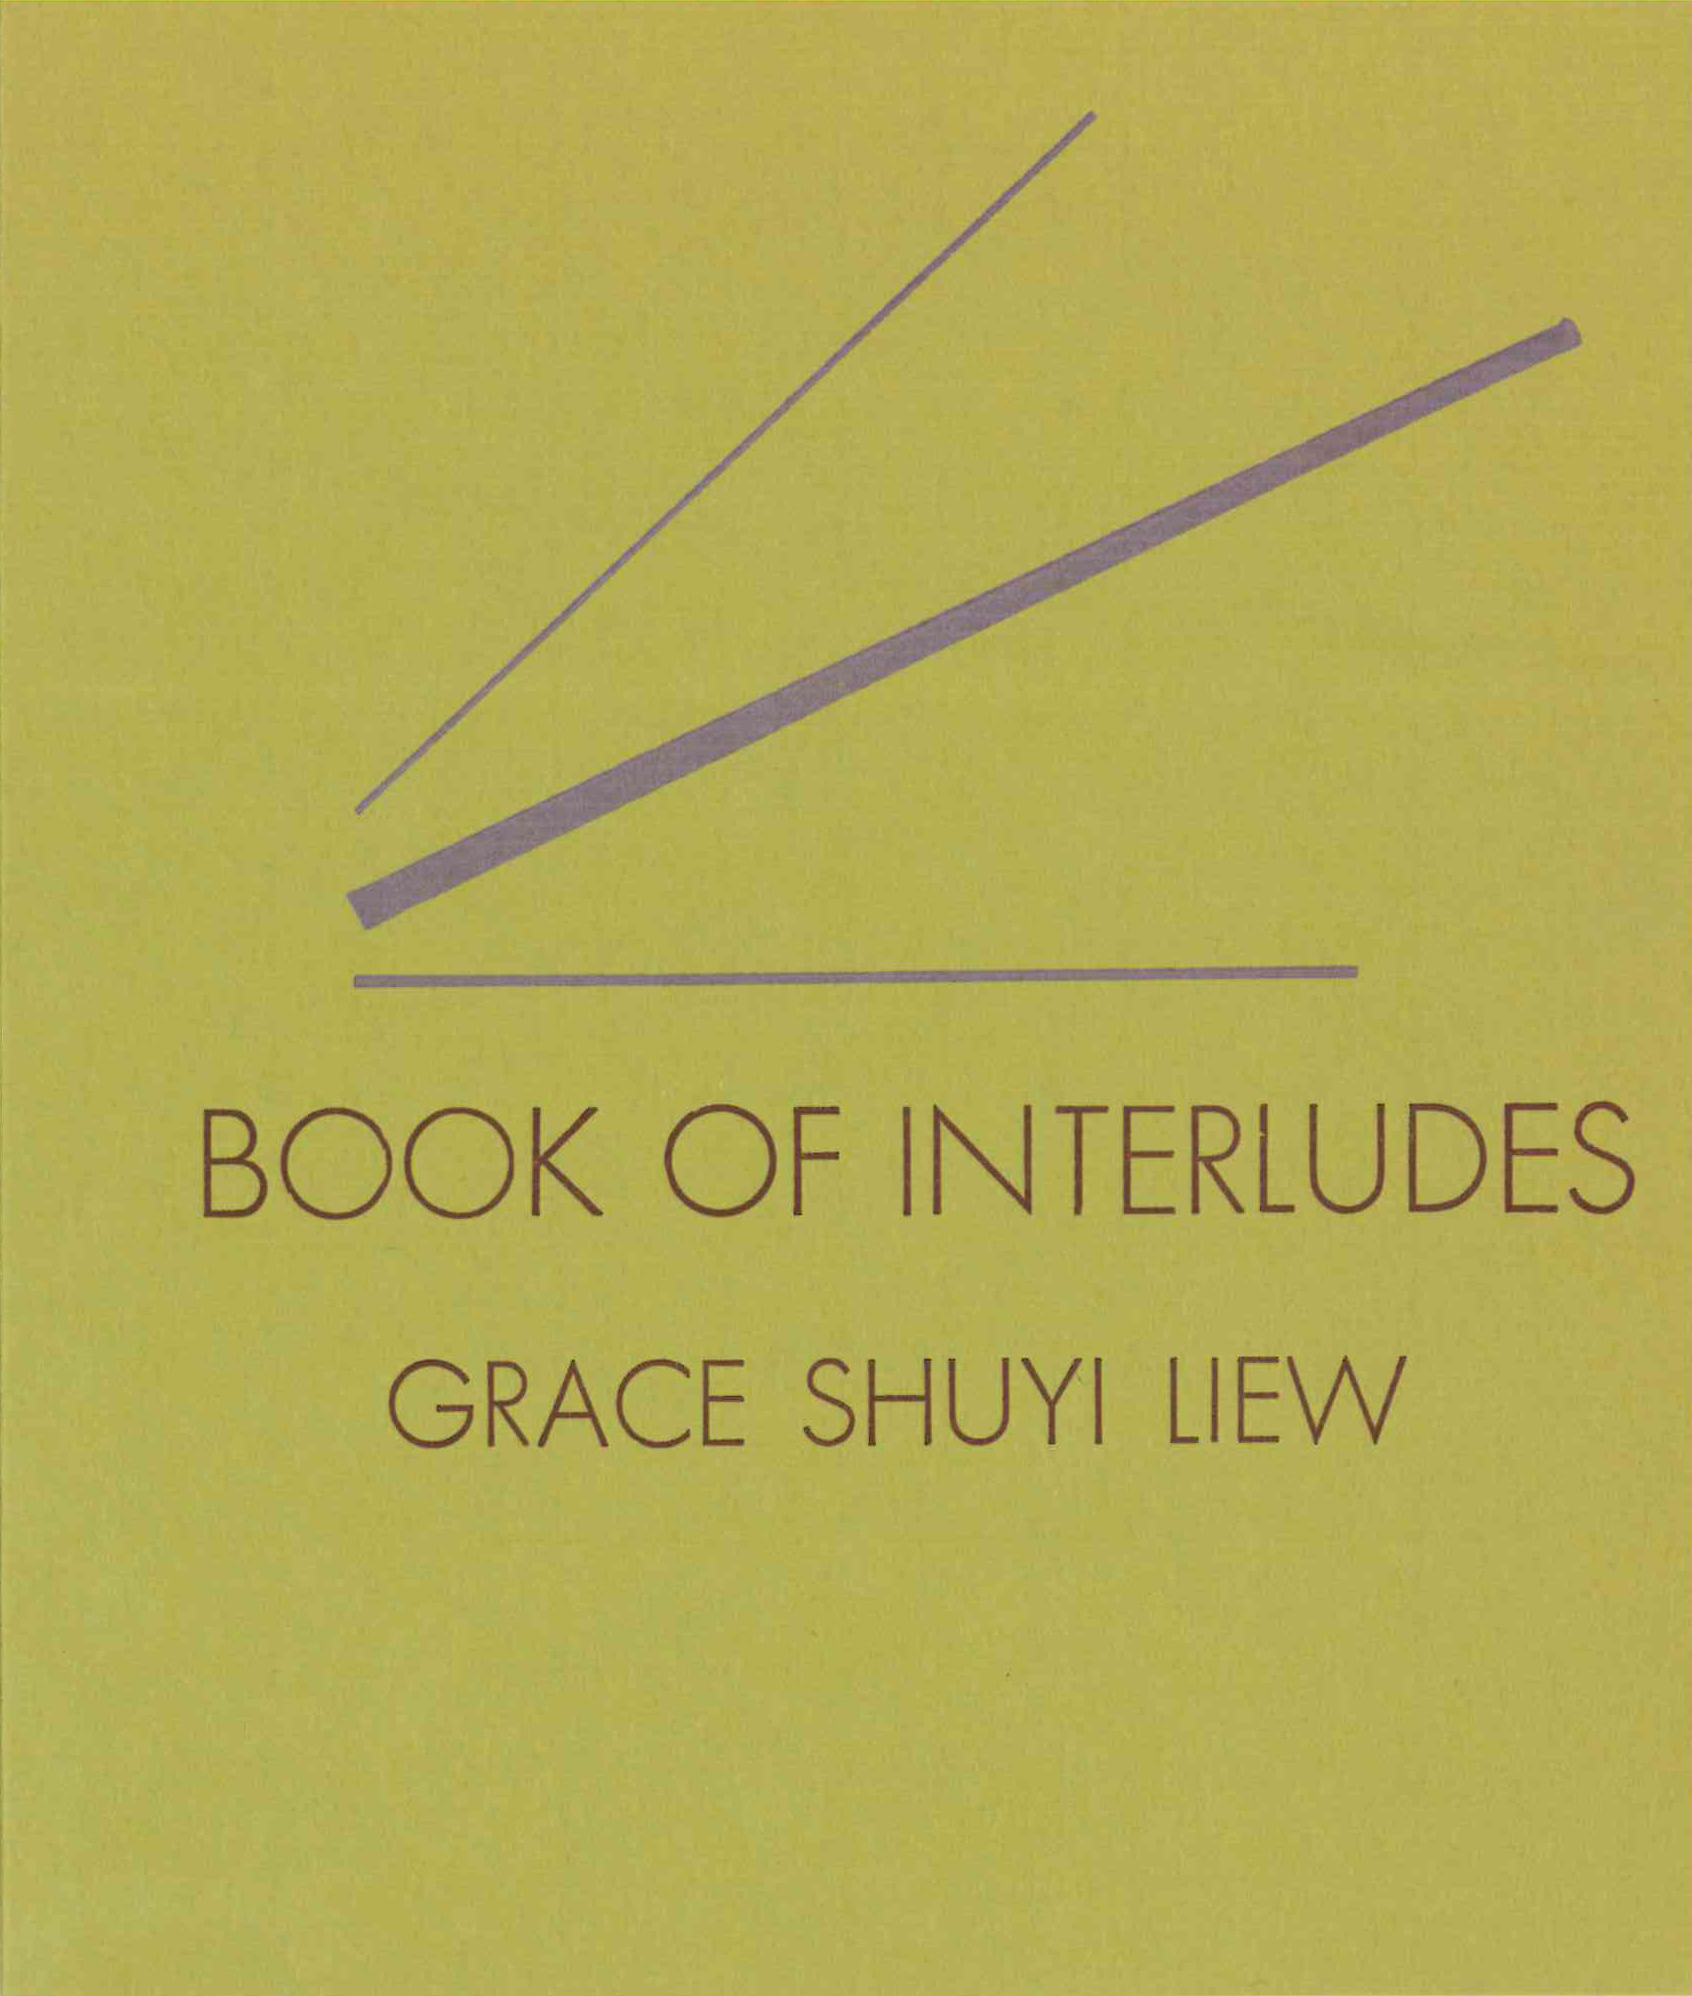 Book of Interludes